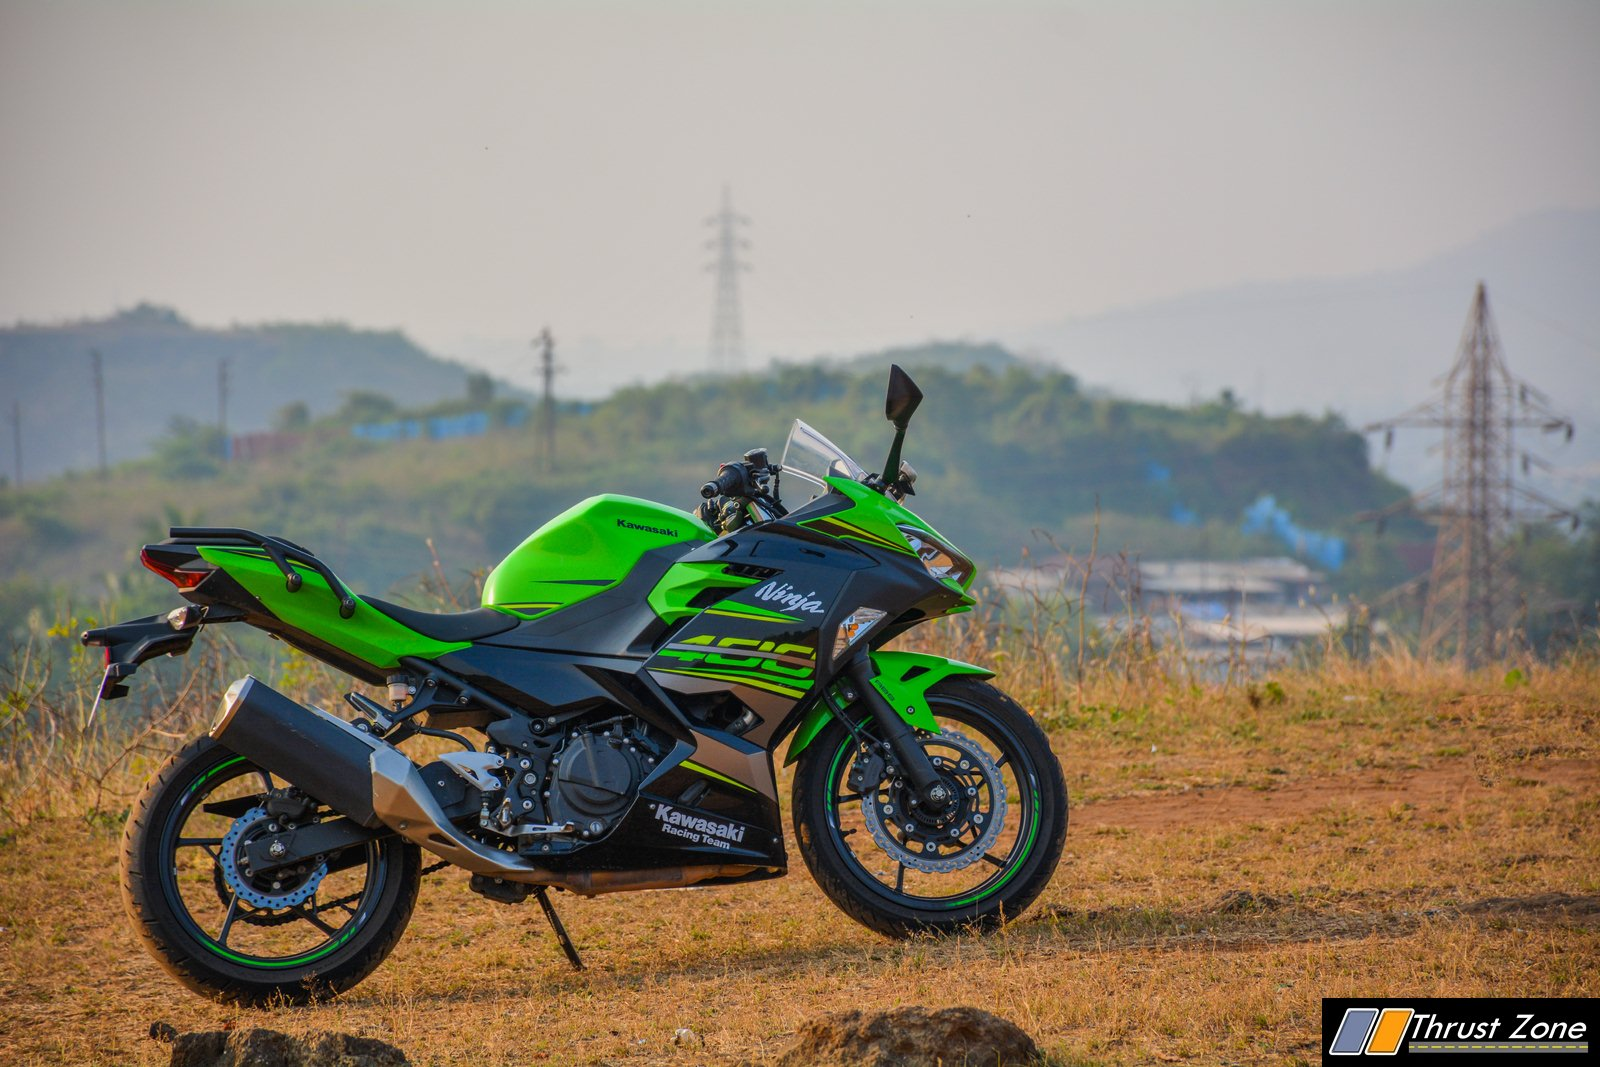 https://www.thrustzone.com/wp-content/uploads/2018/11/2018-Kawasaki-Ninja-400-India-Review-21.jpg